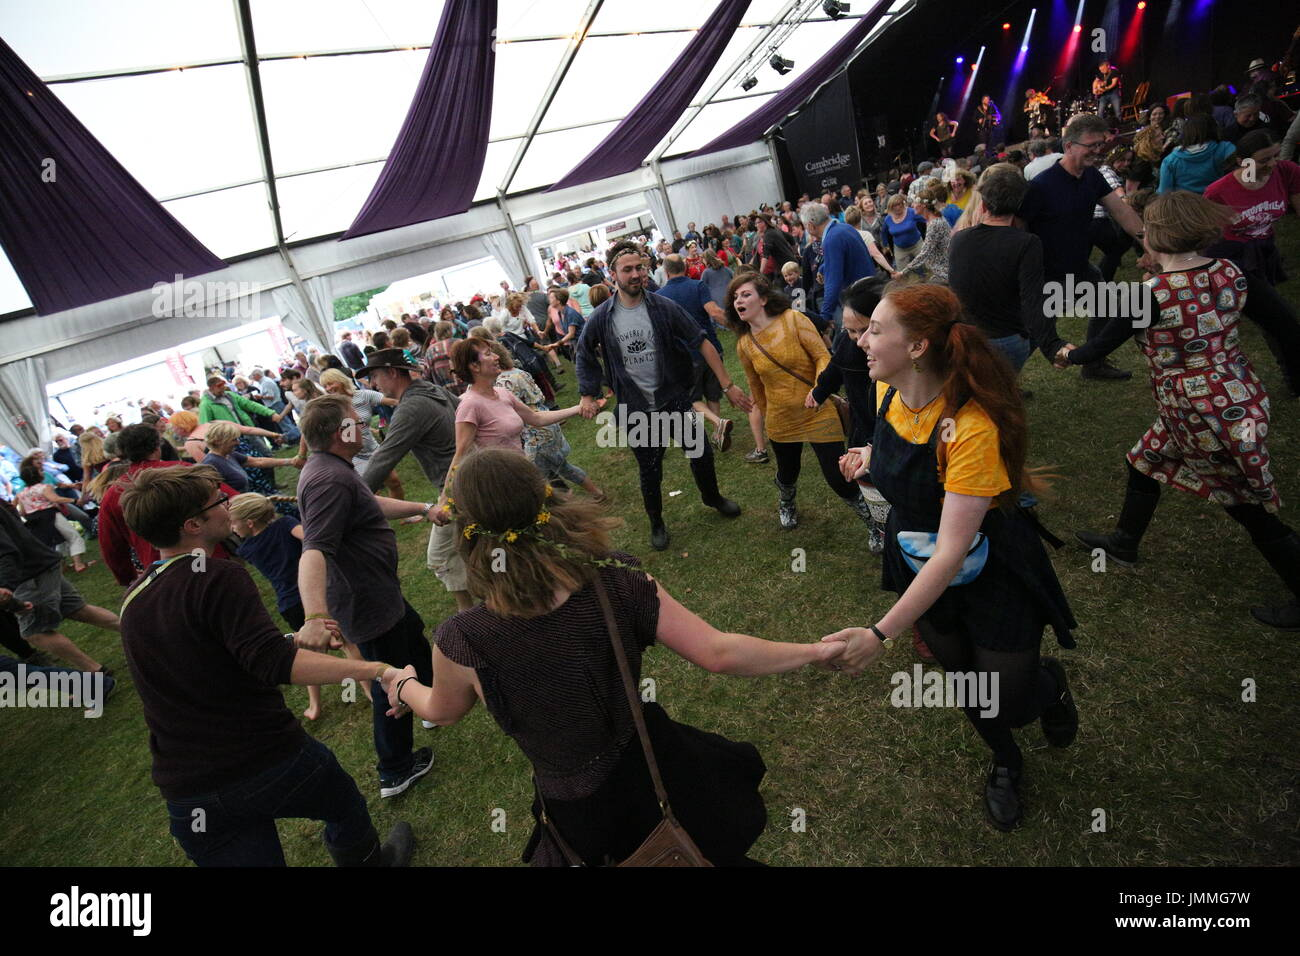 Cambridge, UK. 28th July, 2017. People attending the Cambridge Folk Festival participate in The Urban Folk Theory's Celidh. Richard Etteridge / Alamy Live News - Stock Image